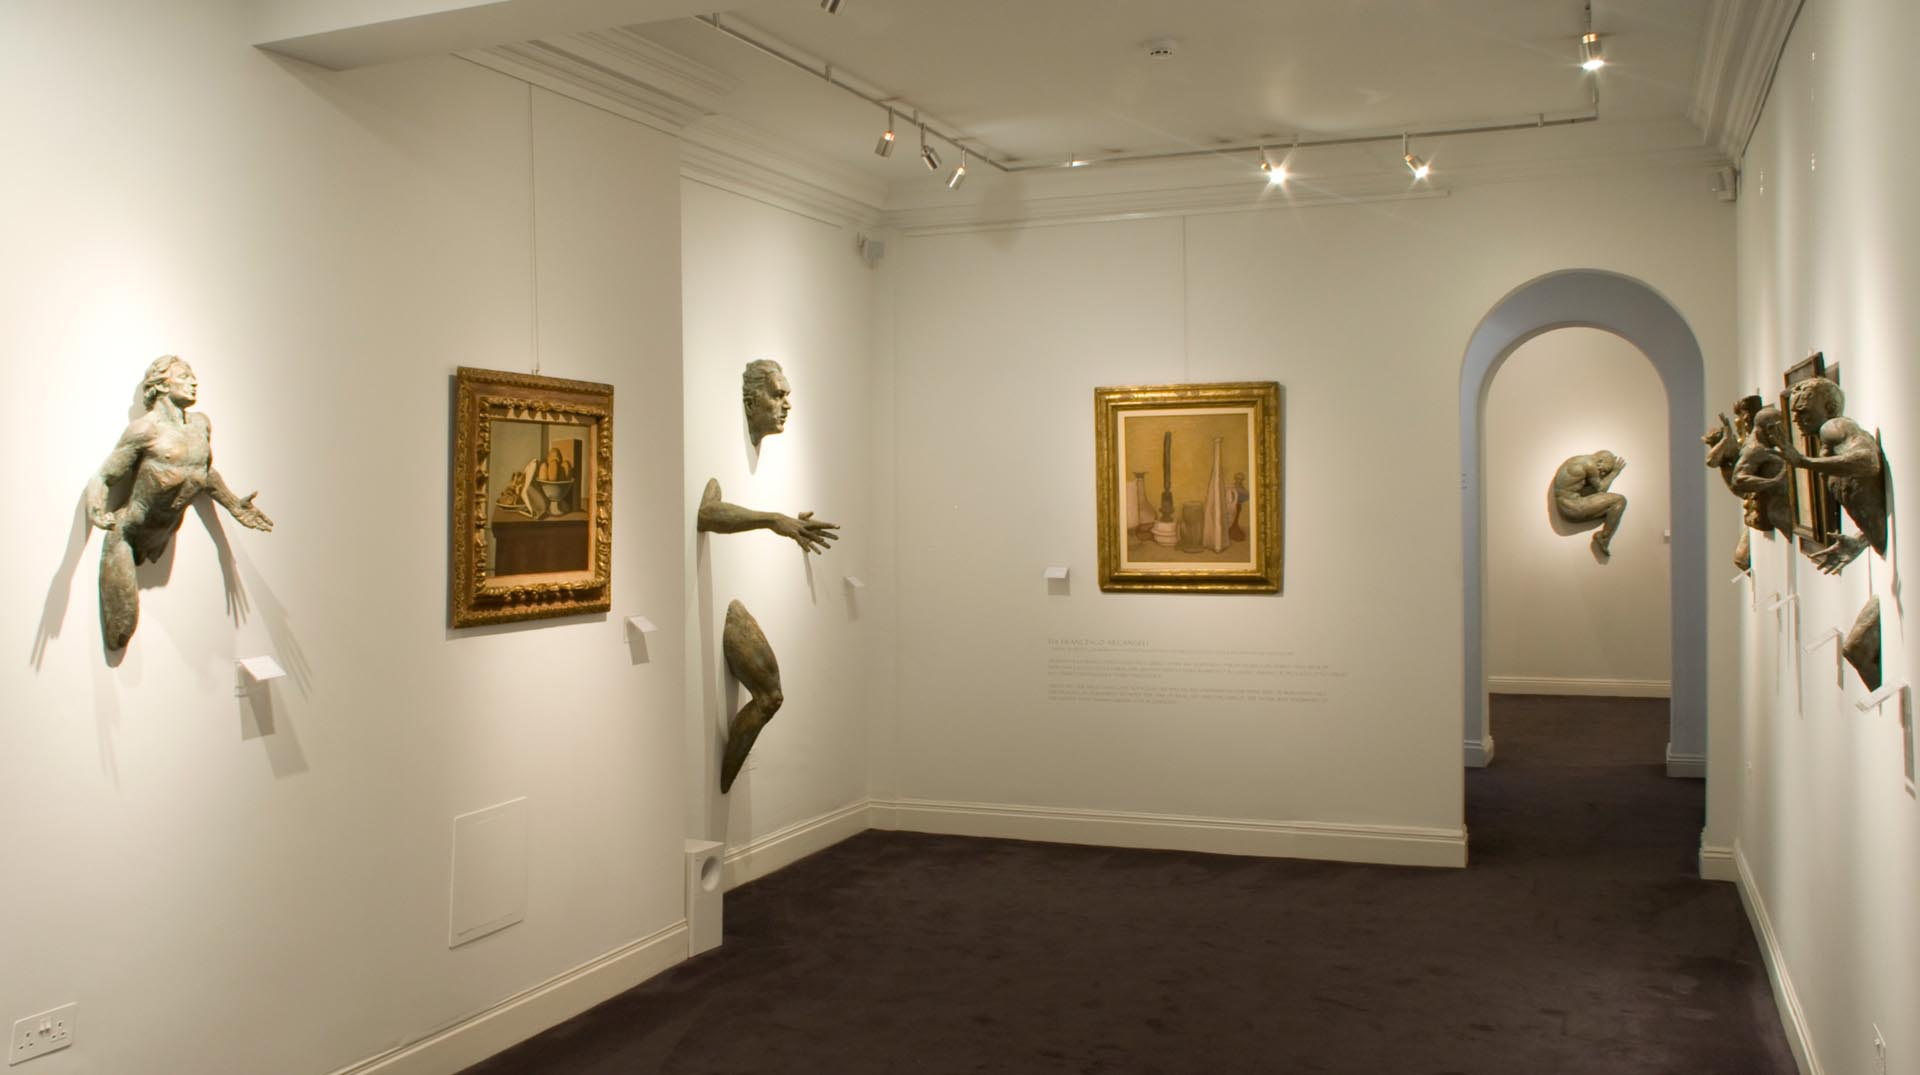 museum track lighting. Lighting Design International Was Commissioned To Illuminate The Imago Art Gallery In Clifford Street, A Centre For Italian London, Using Versatile Museum Track